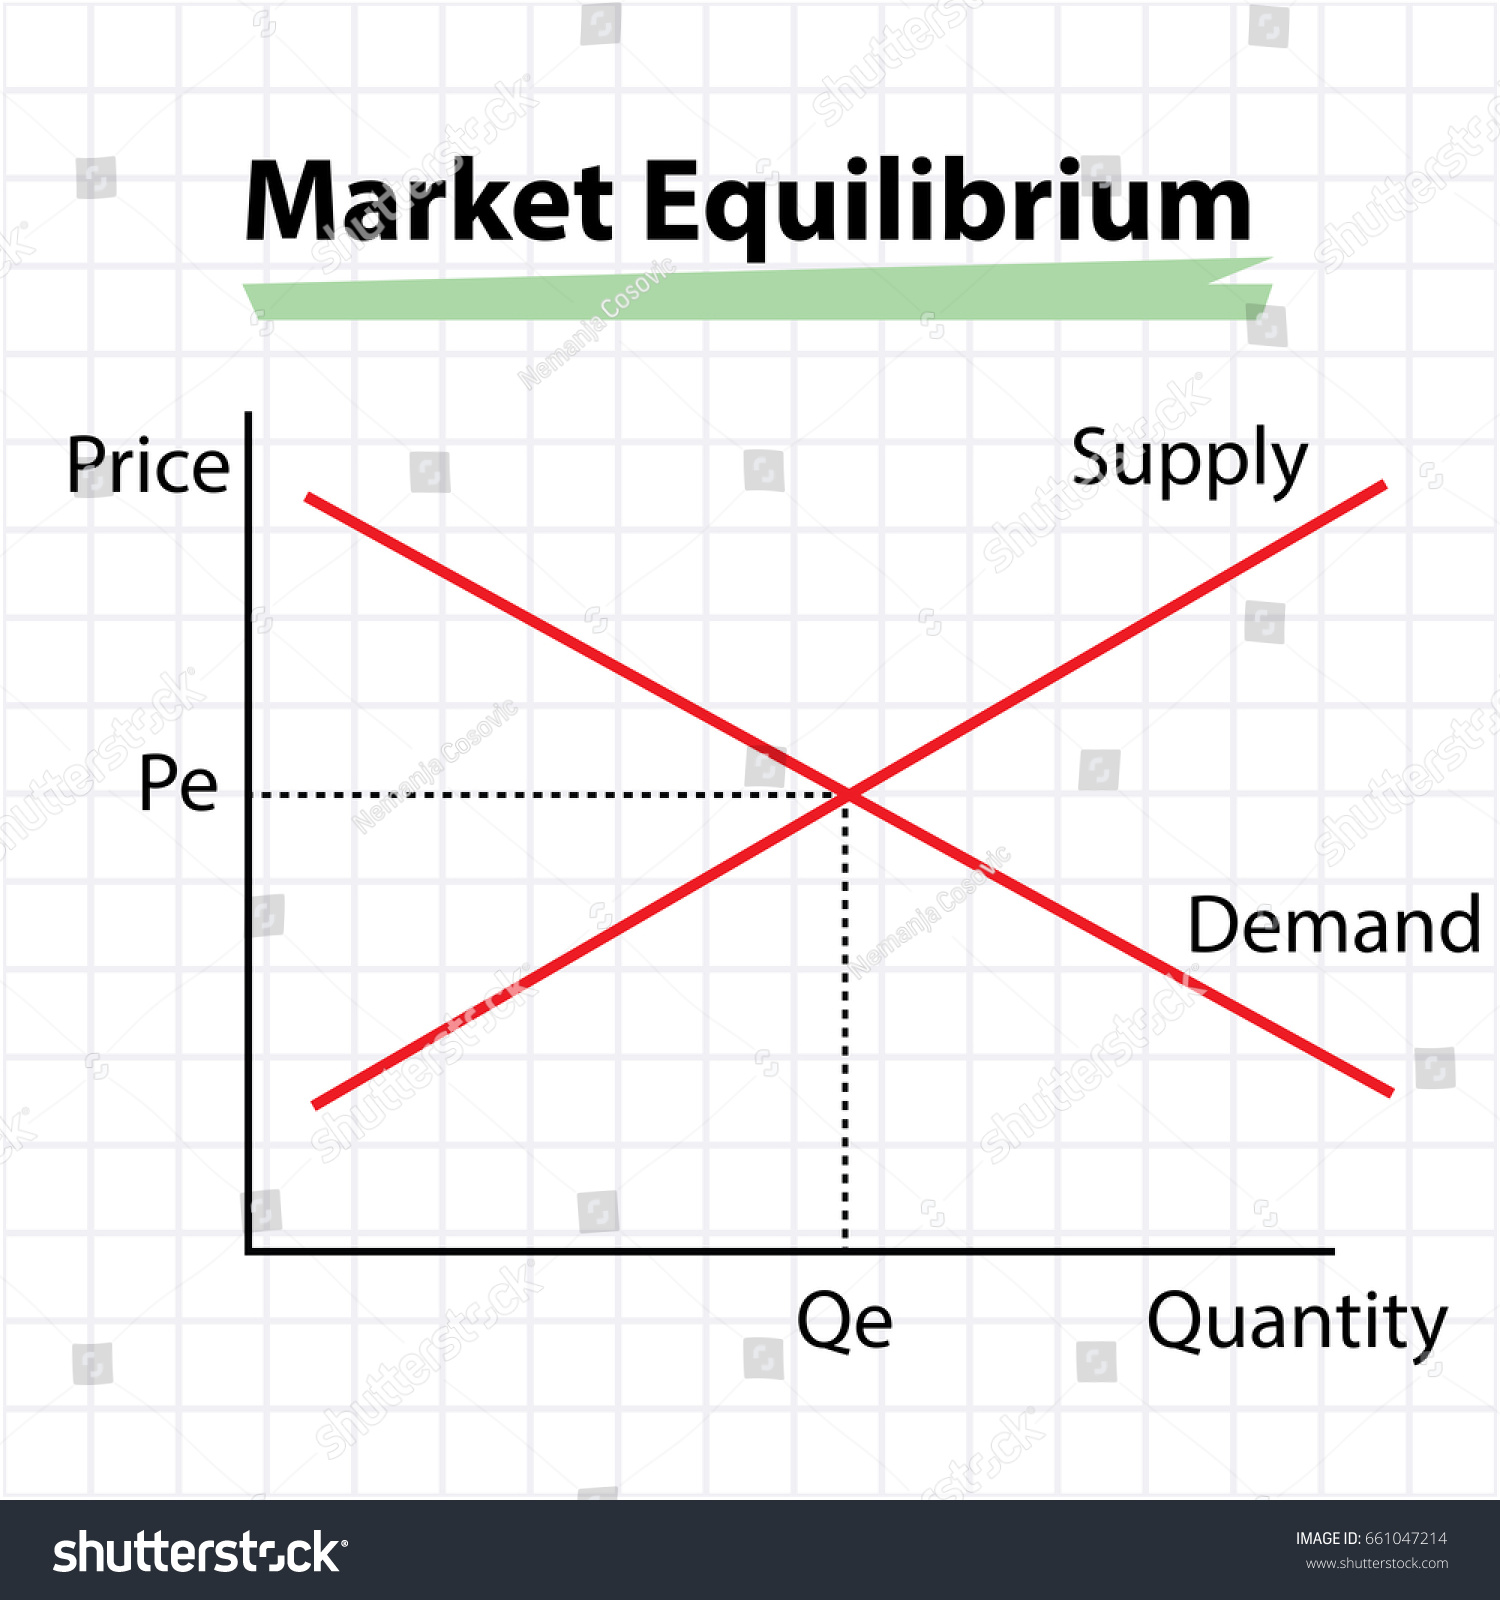 market equililibrium Shifts in the demand and supply curves alter market equilibrium on the demand side, any factor which makes the demand curve shift to the right (without affecting the supply curve) will increase the equilibrium price and quantity.